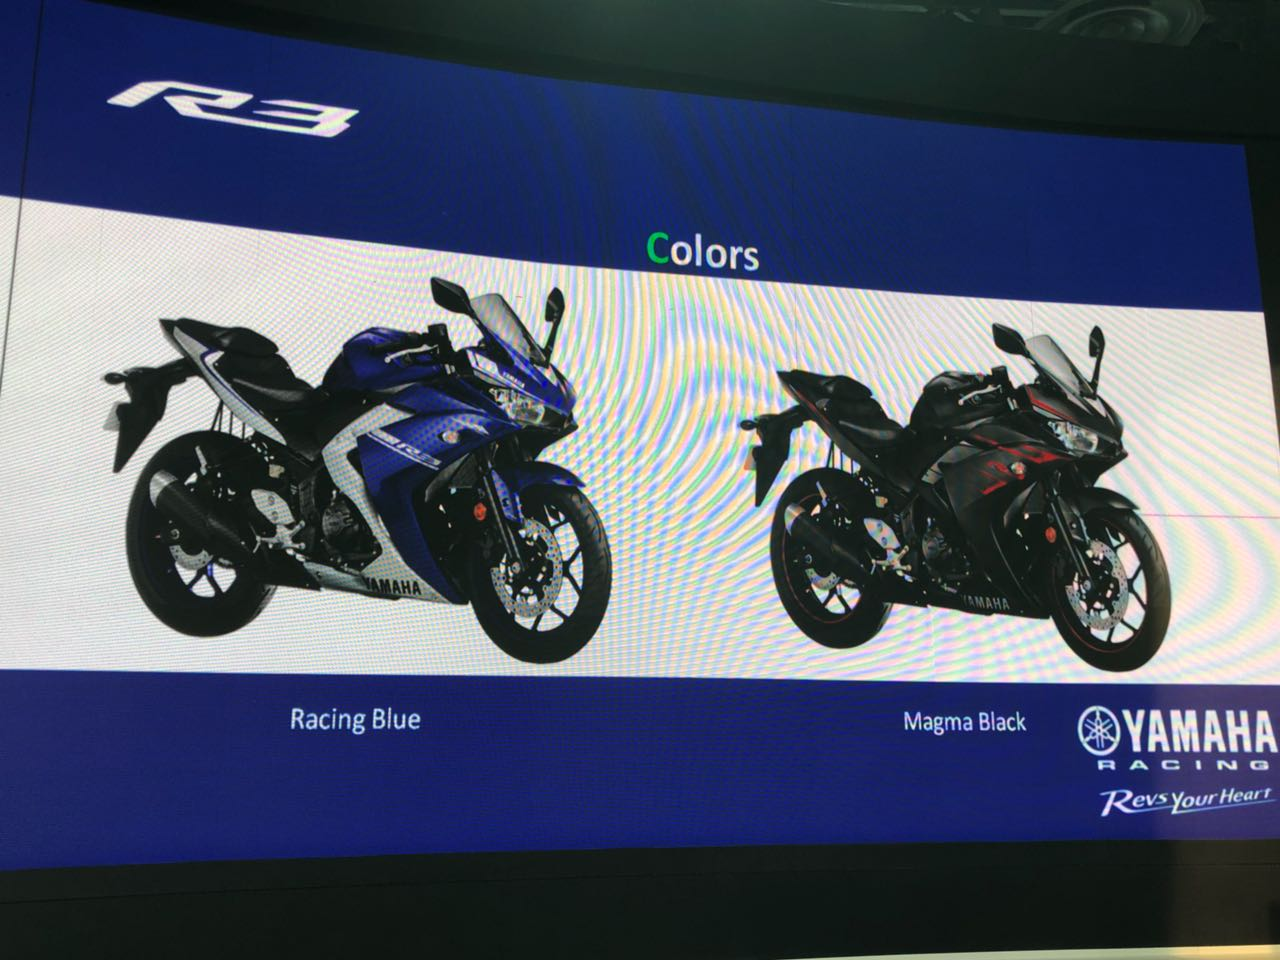 <p>Here are the colour options for the Yamaha R3</p>